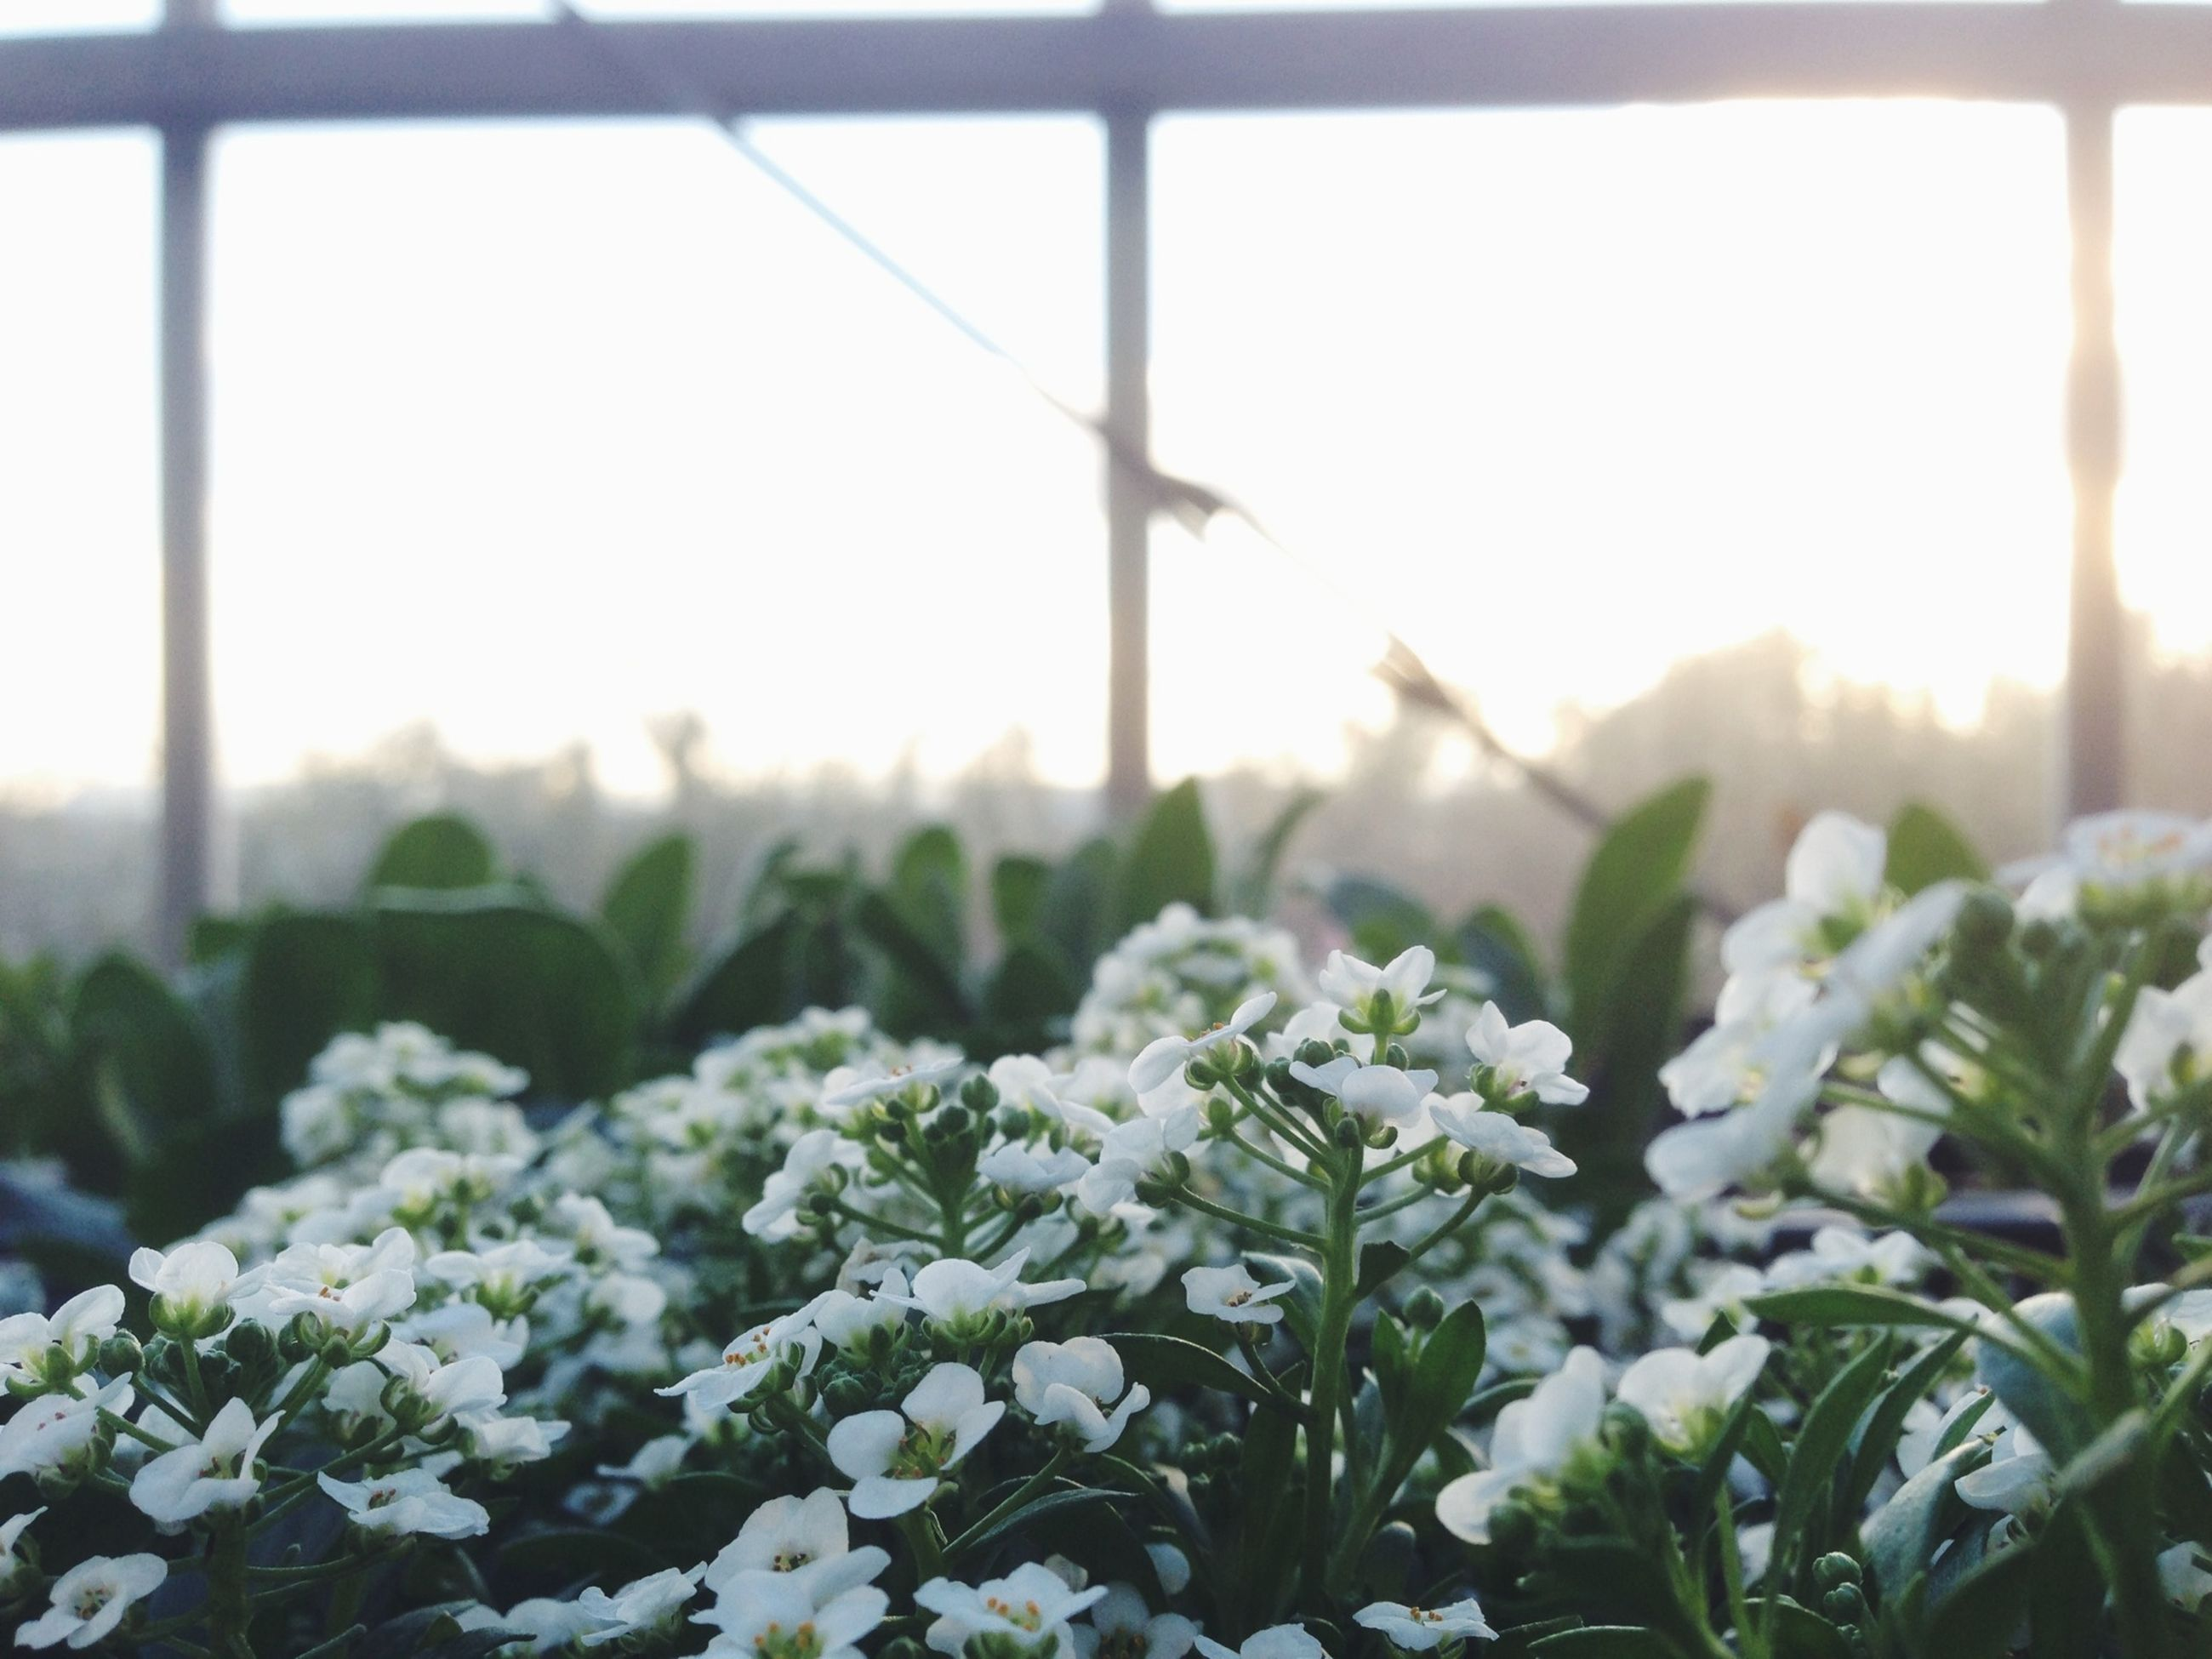 plant, growth, flower, nature, beauty in nature, sun, sunlight, fragility, freshness, leaf, focus on foreground, tranquility, sunbeam, fence, close-up, field, sunset, sky, no people, day